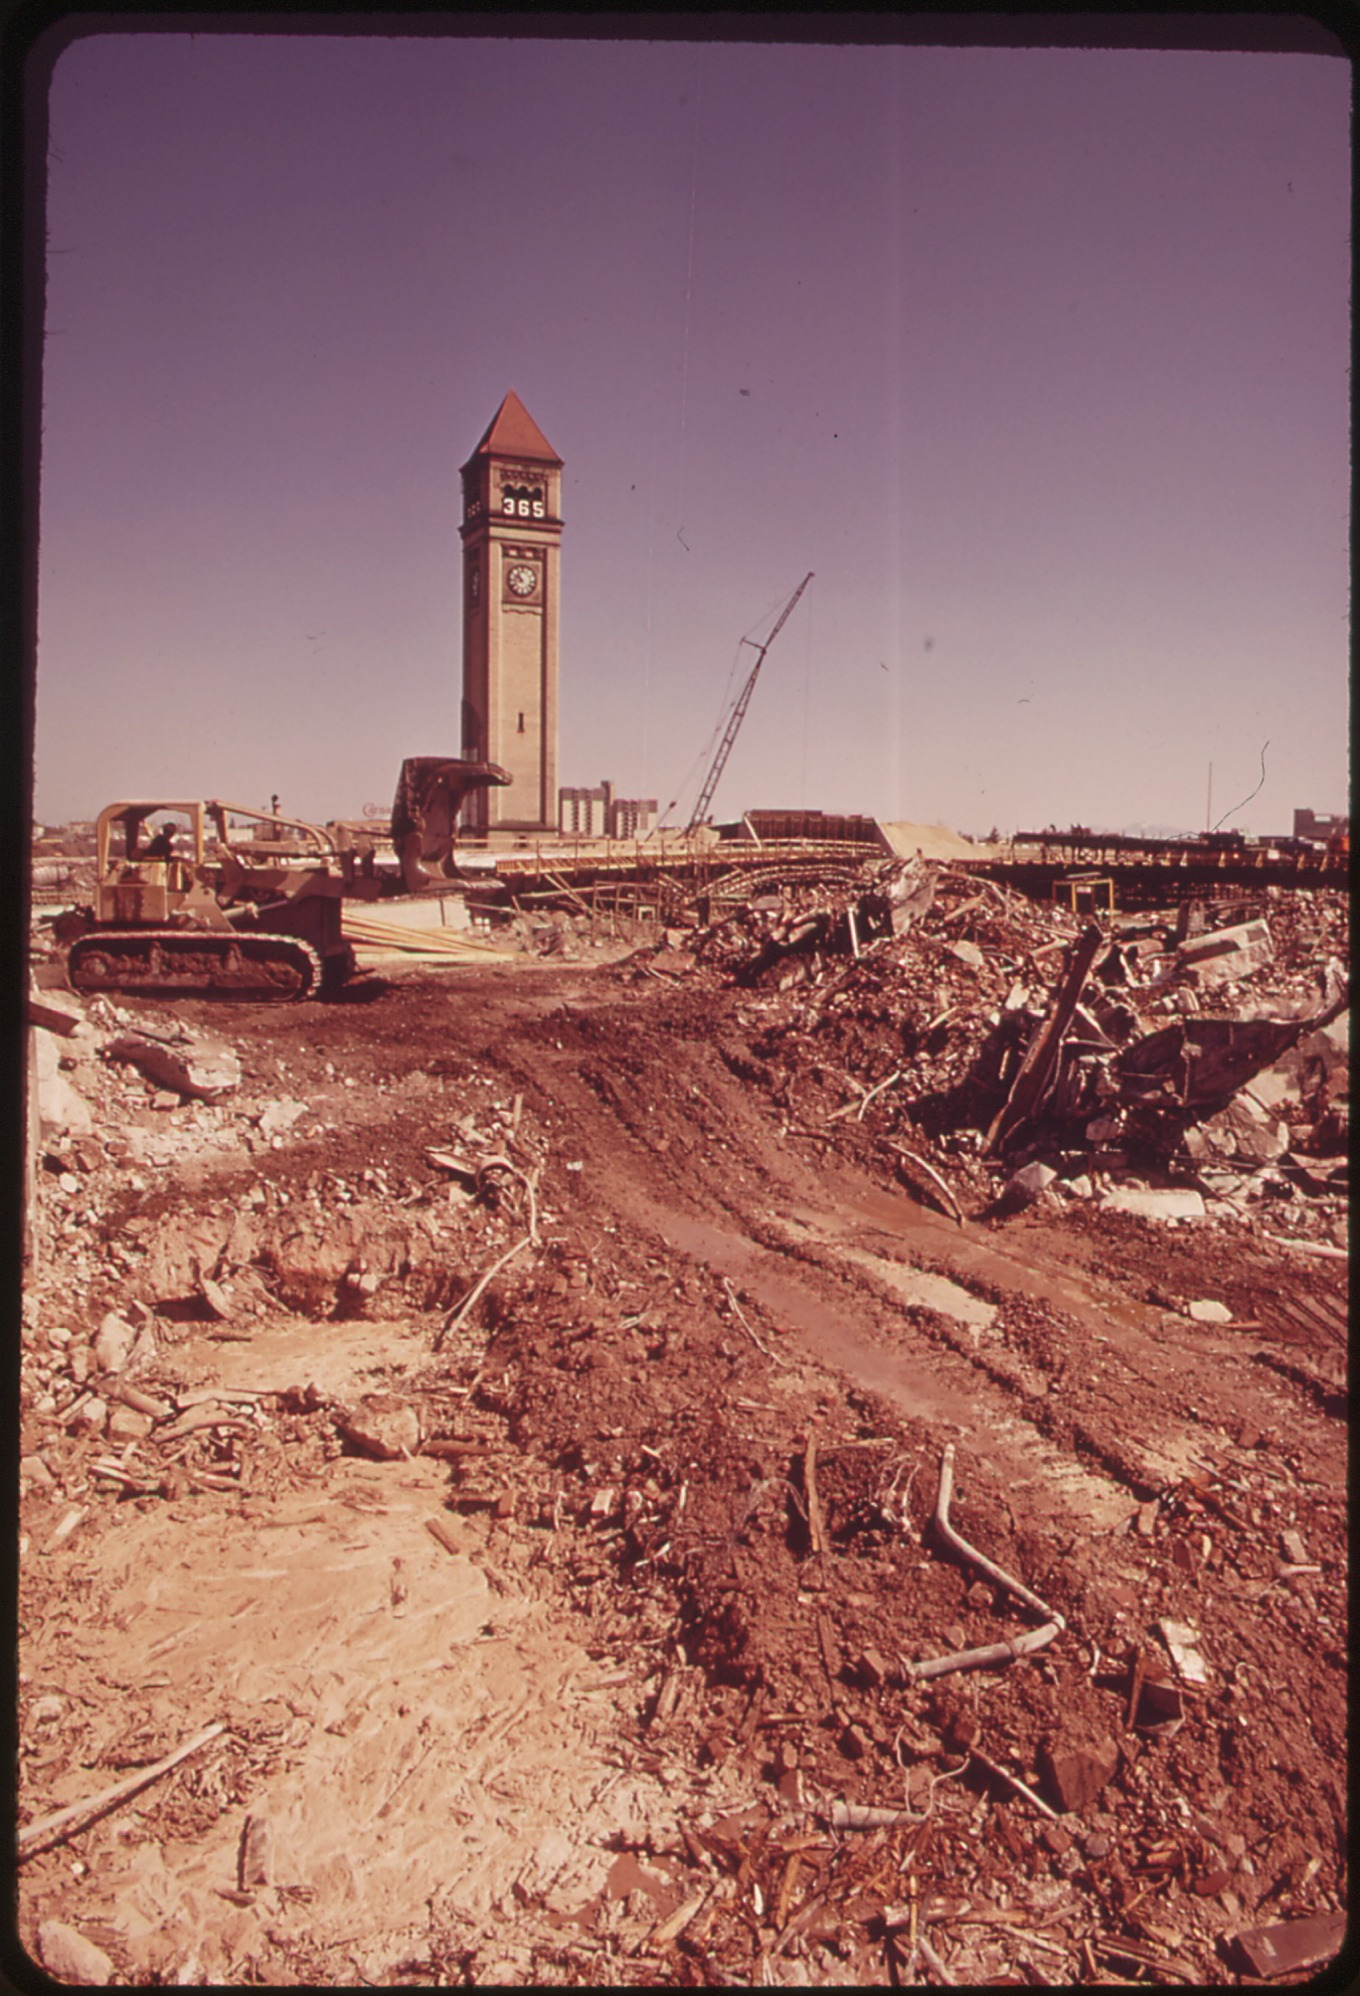 CONSTRUCTION_ON_SITE_OF_EXPO_74._ENVIRONMENT_WILL_BE_THE_THEME_-_NARA_-_548093PD